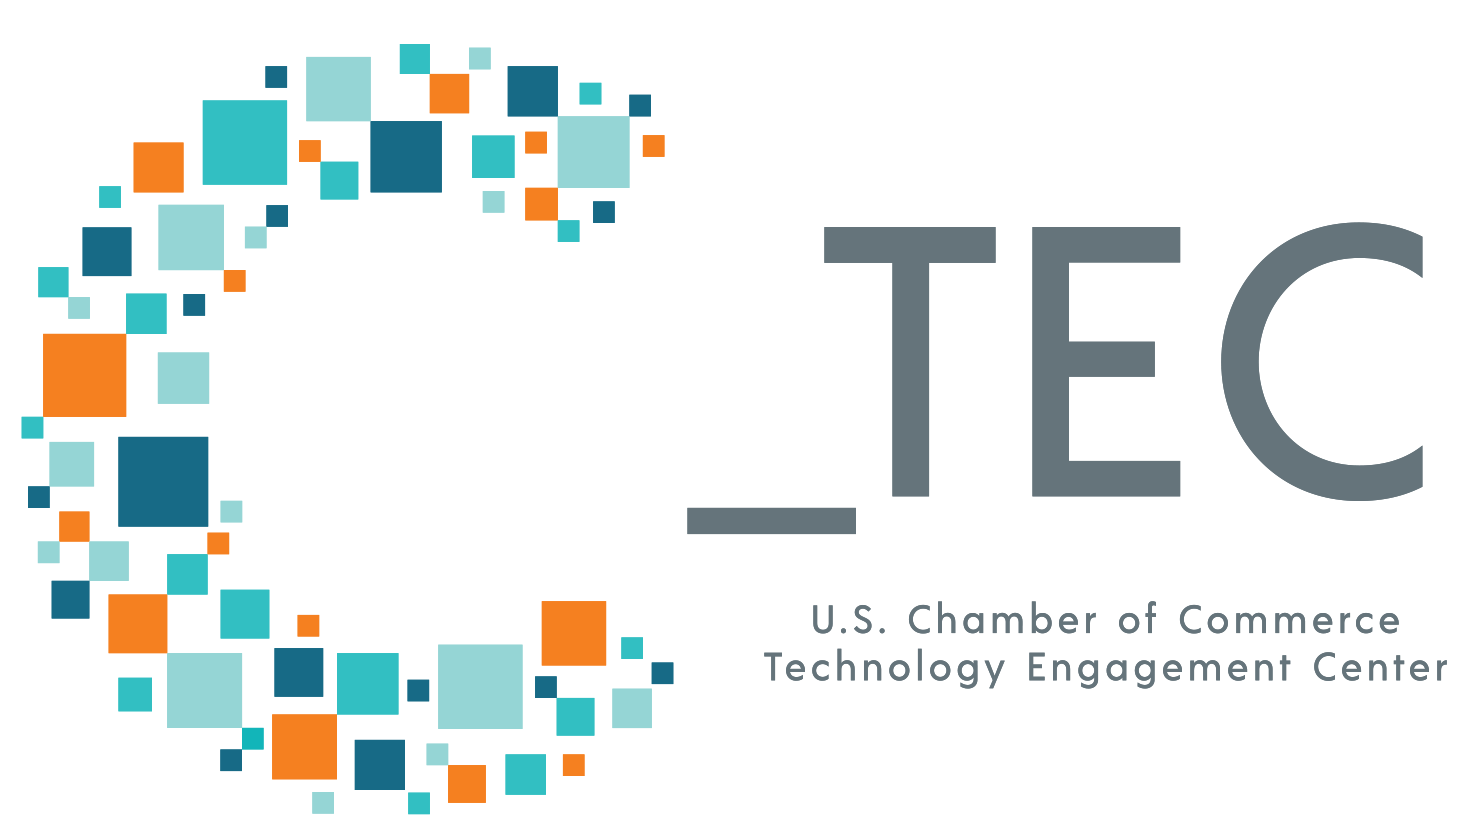 C_TEC - U.S. Chamber of Commerce Technology Engagement Center